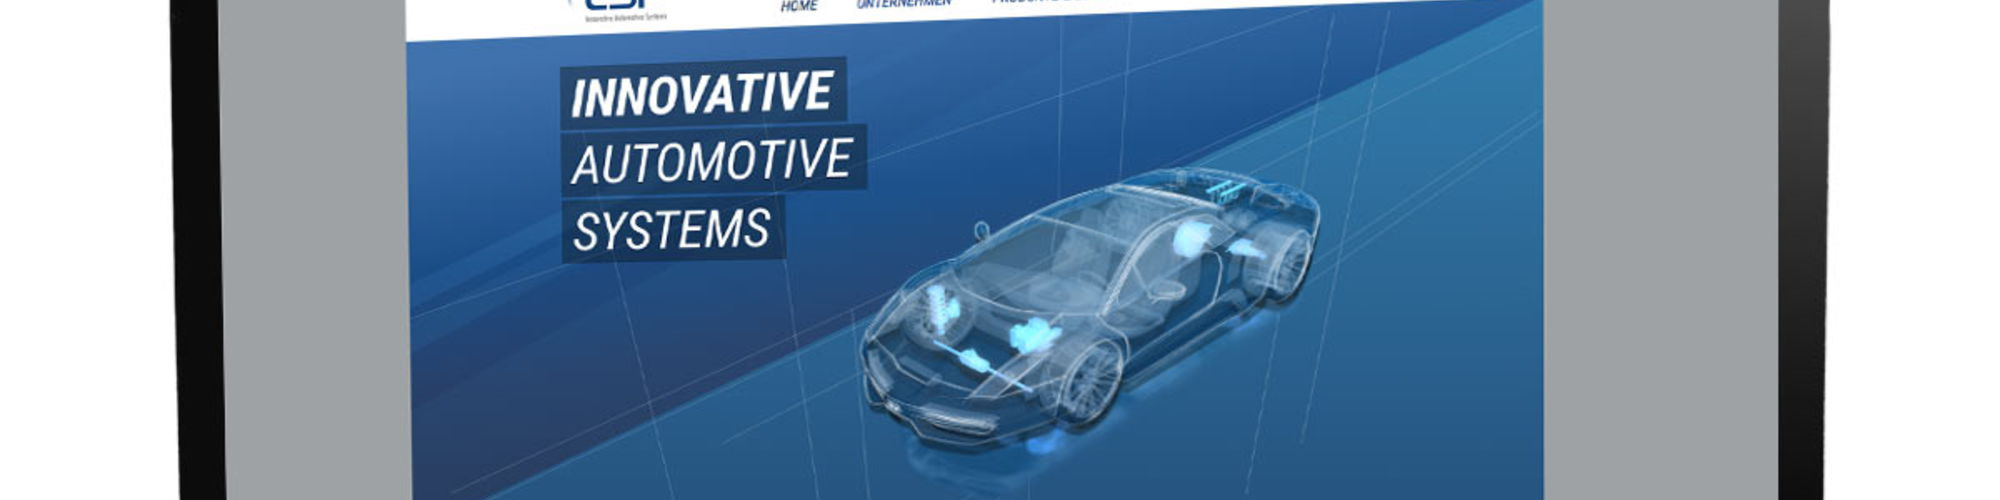 LSP Innovative Automotive Systems GmbH cover image